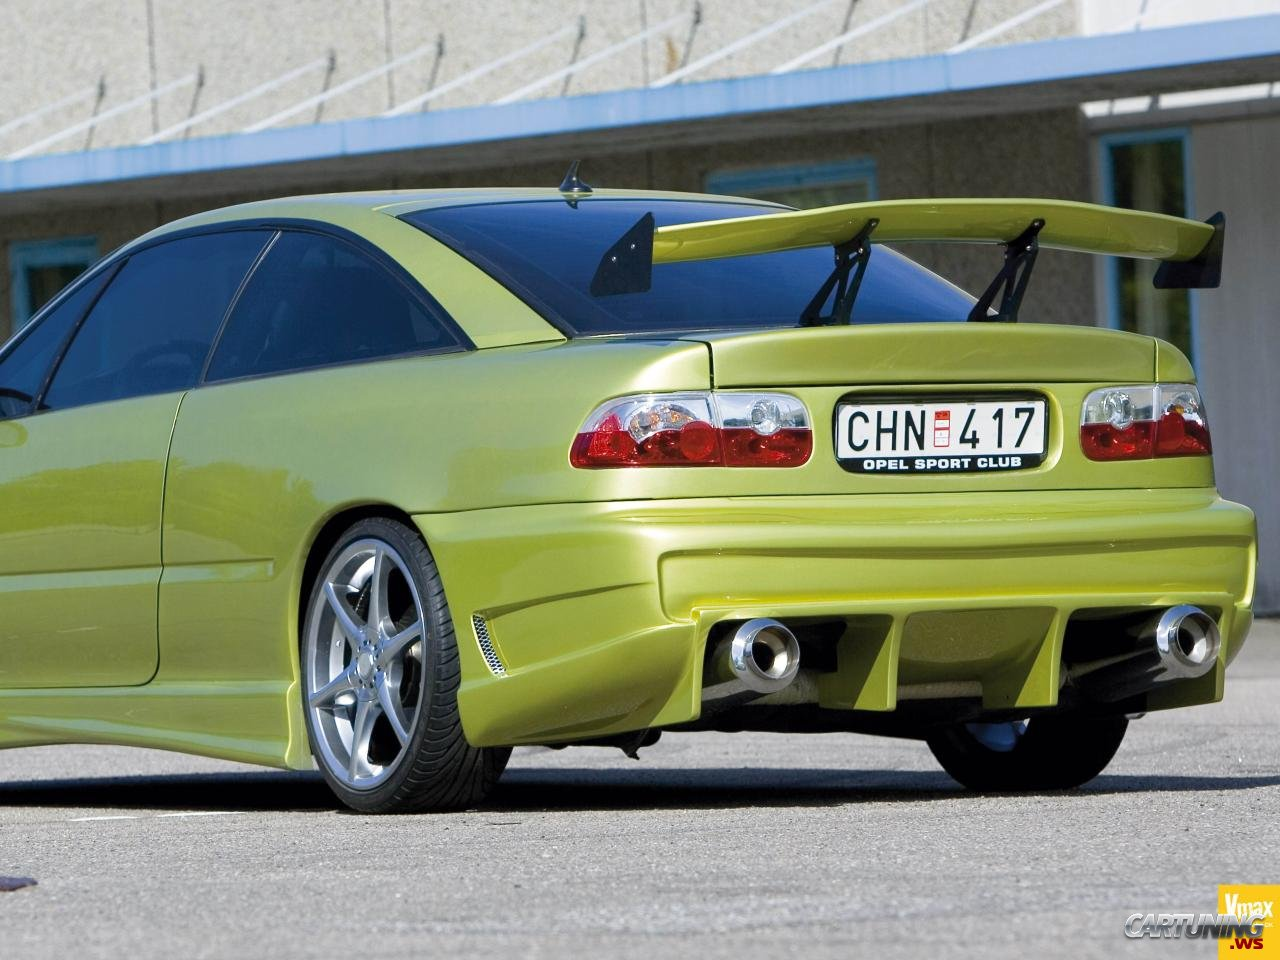 Audi A3 2008 >> Tuning Opel Calibra » CarTuning - Best Car Tuning Photos From All The World